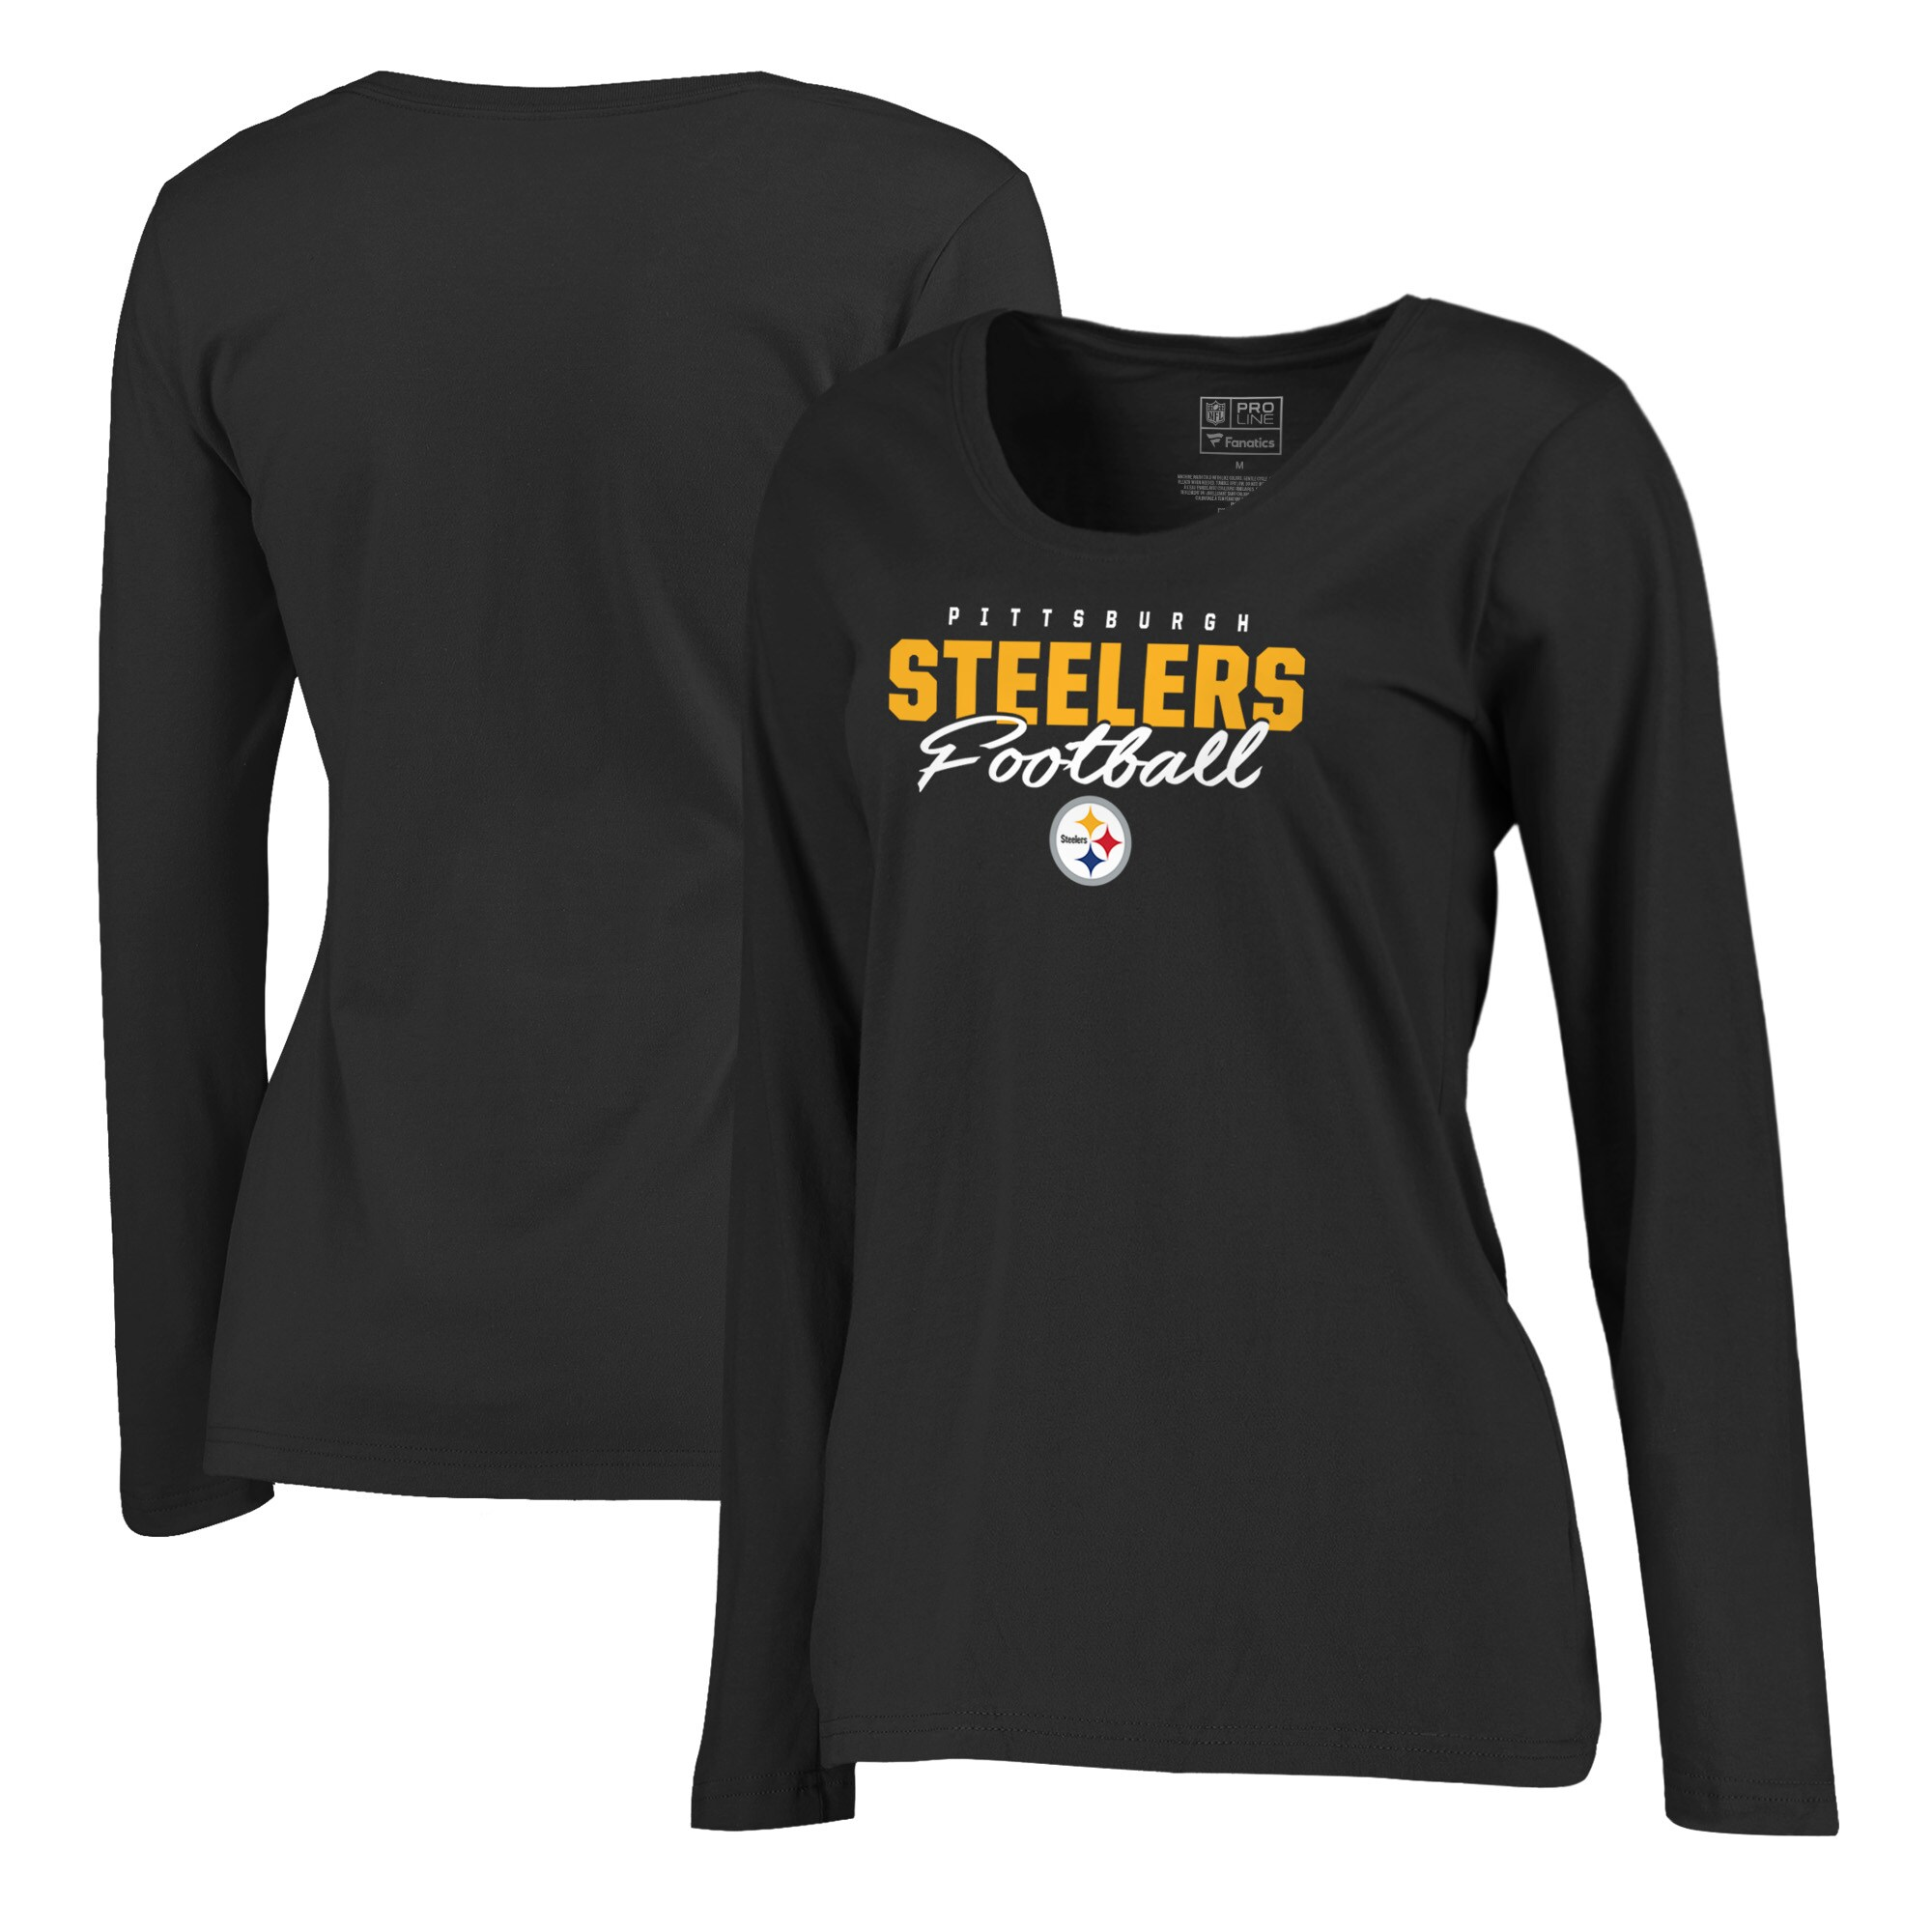 Pittsburgh Steelers NFL Pro Line by Fanatics Branded Women's Iconic Collection Script Assist Plus Size Long Sleeve T-Shirt - Black